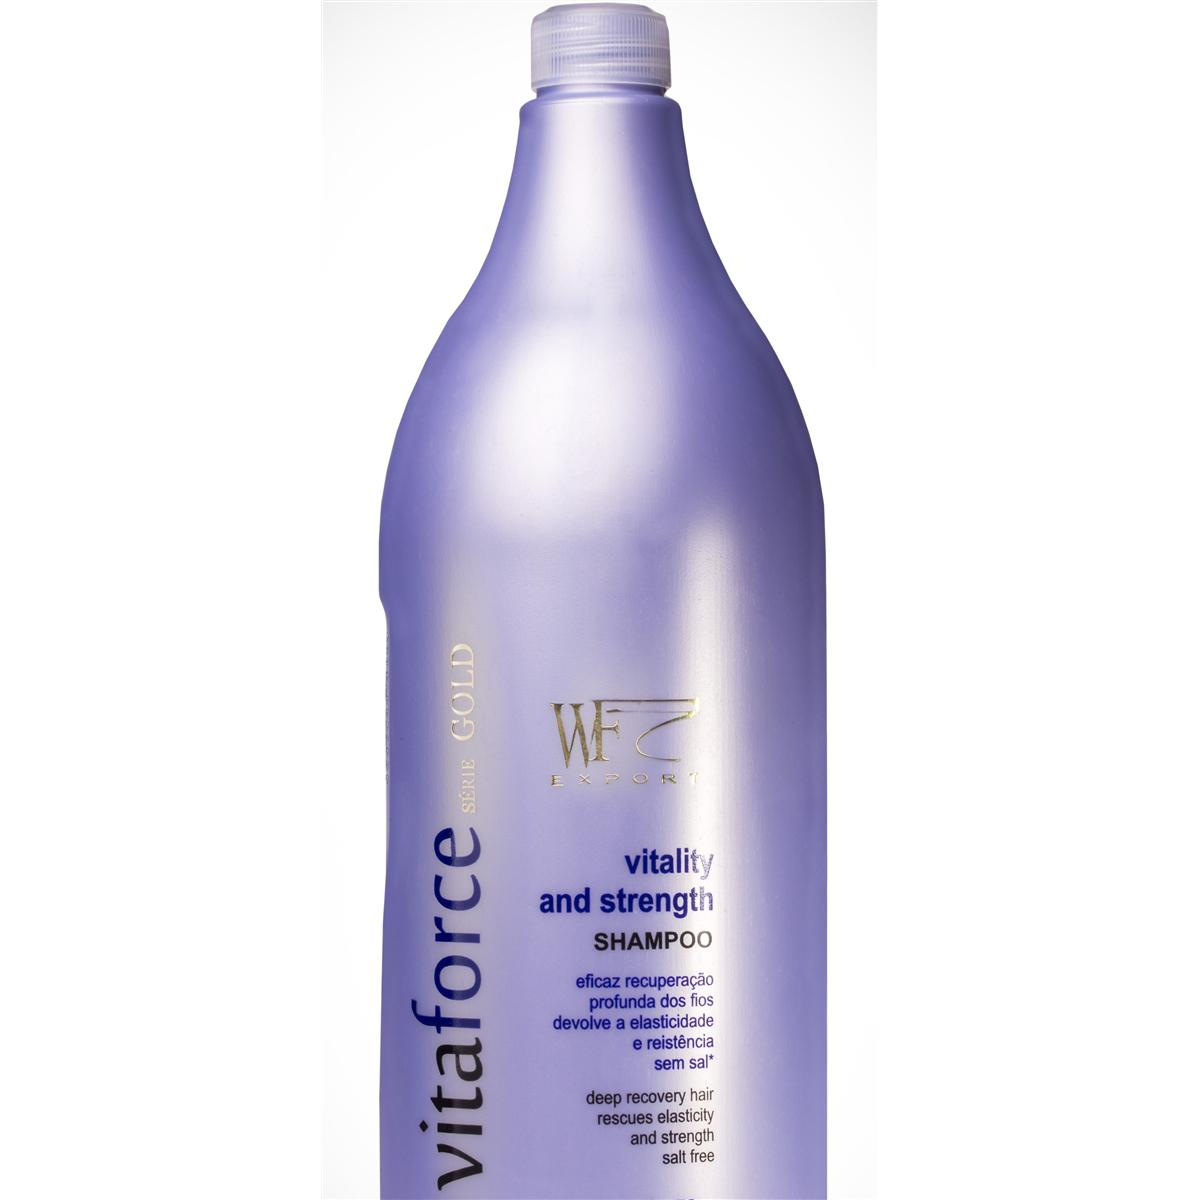 VITAFORCE - SHAMPOO VITALITY AND STRENGTH WF COSMETICOS 1,5L